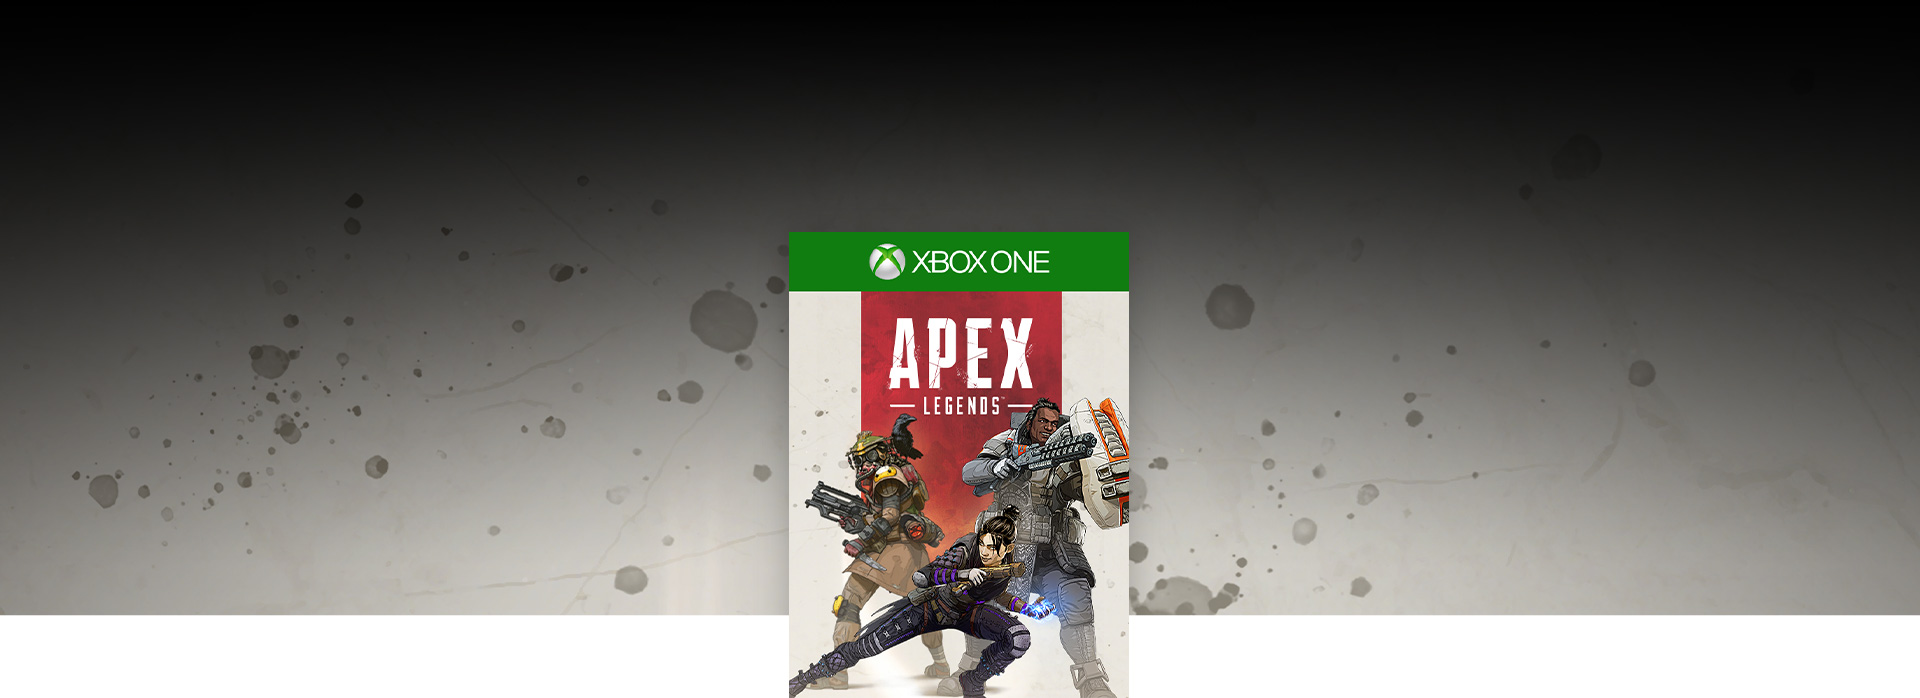 Apex Legends box shot over grey textured background